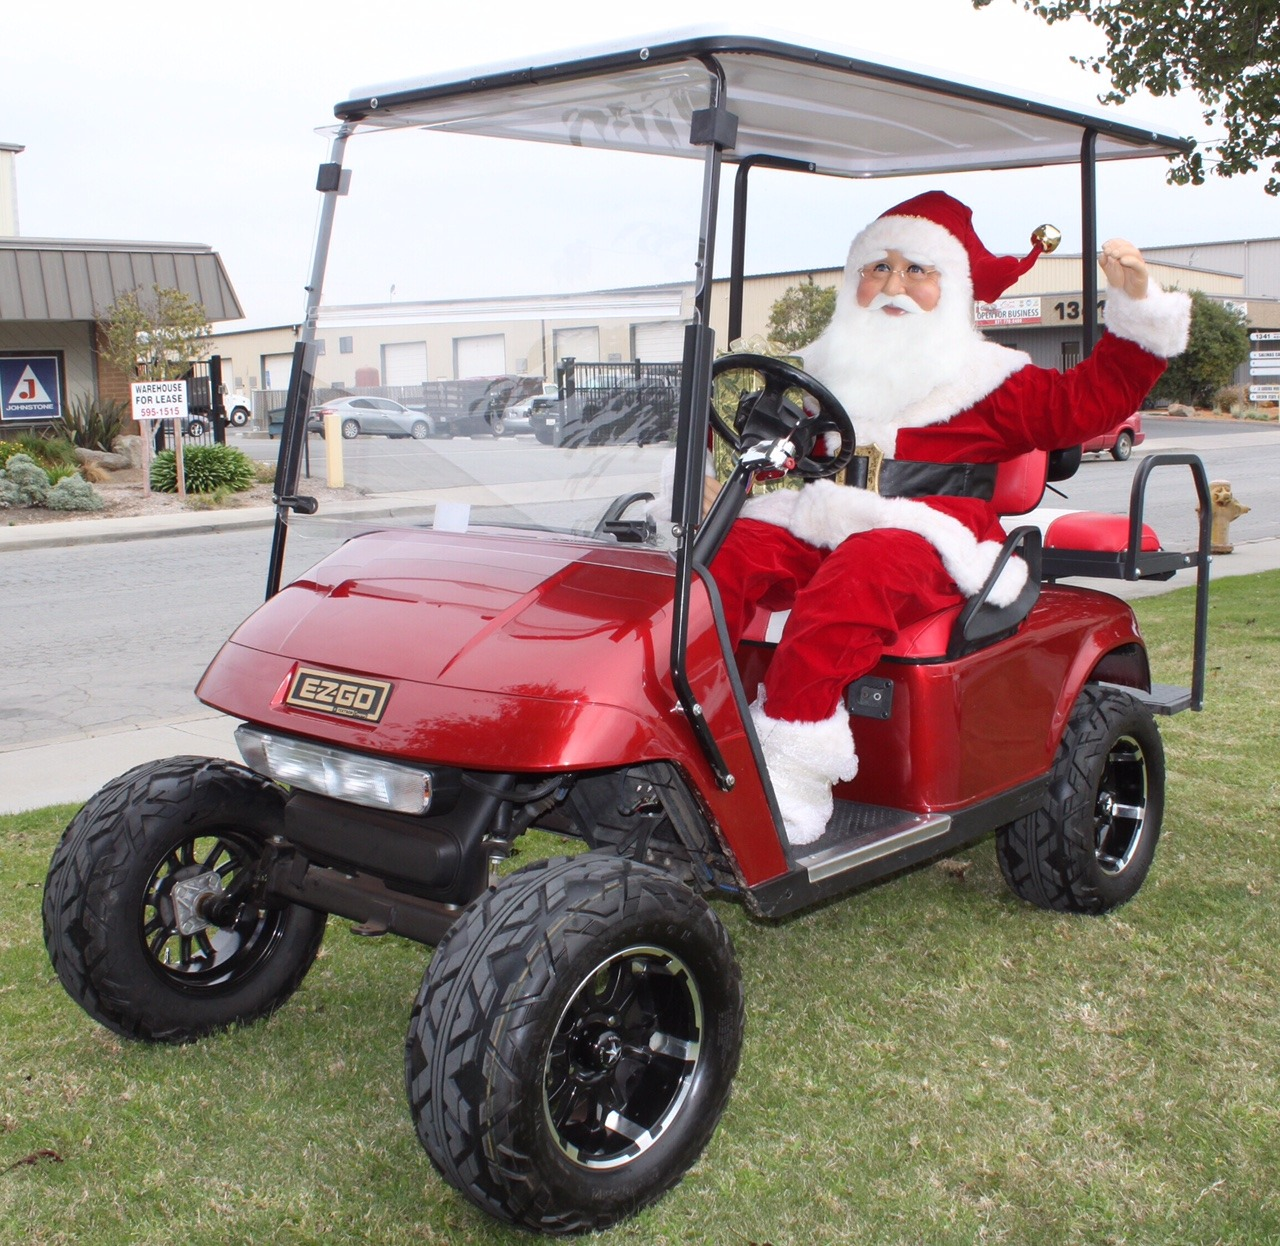 Christmas Santa Golf Cart - Lets Party on golf cart sail, golf cart shark, golf cart fitness, golf cart dog, golf cart school, golf cart slide, golf cart running, golf cart beach, golf cart sports, golf cart fishing, golf cart snow, golf cart boots, golf cart board, golf cart moto, golf cart hockey, golf cart football, golf cart surf, golf cart baseball, golf cart fish, golf cart out run,